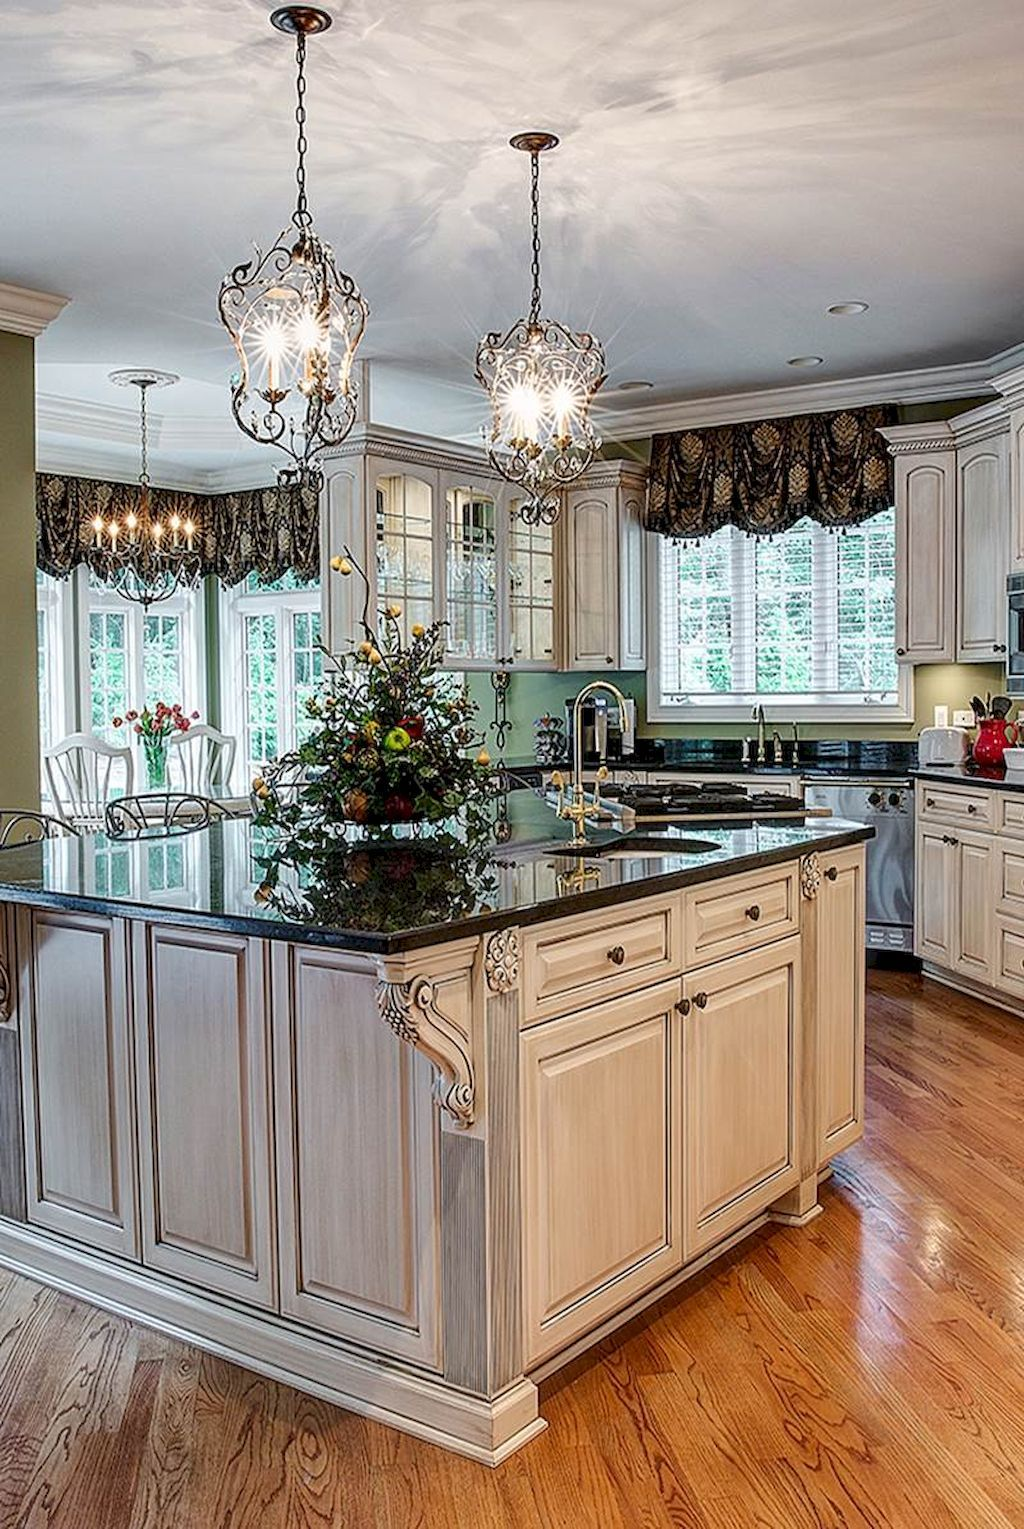 40 French Country Kitchen Design Ideas | Decoración de interiores ...